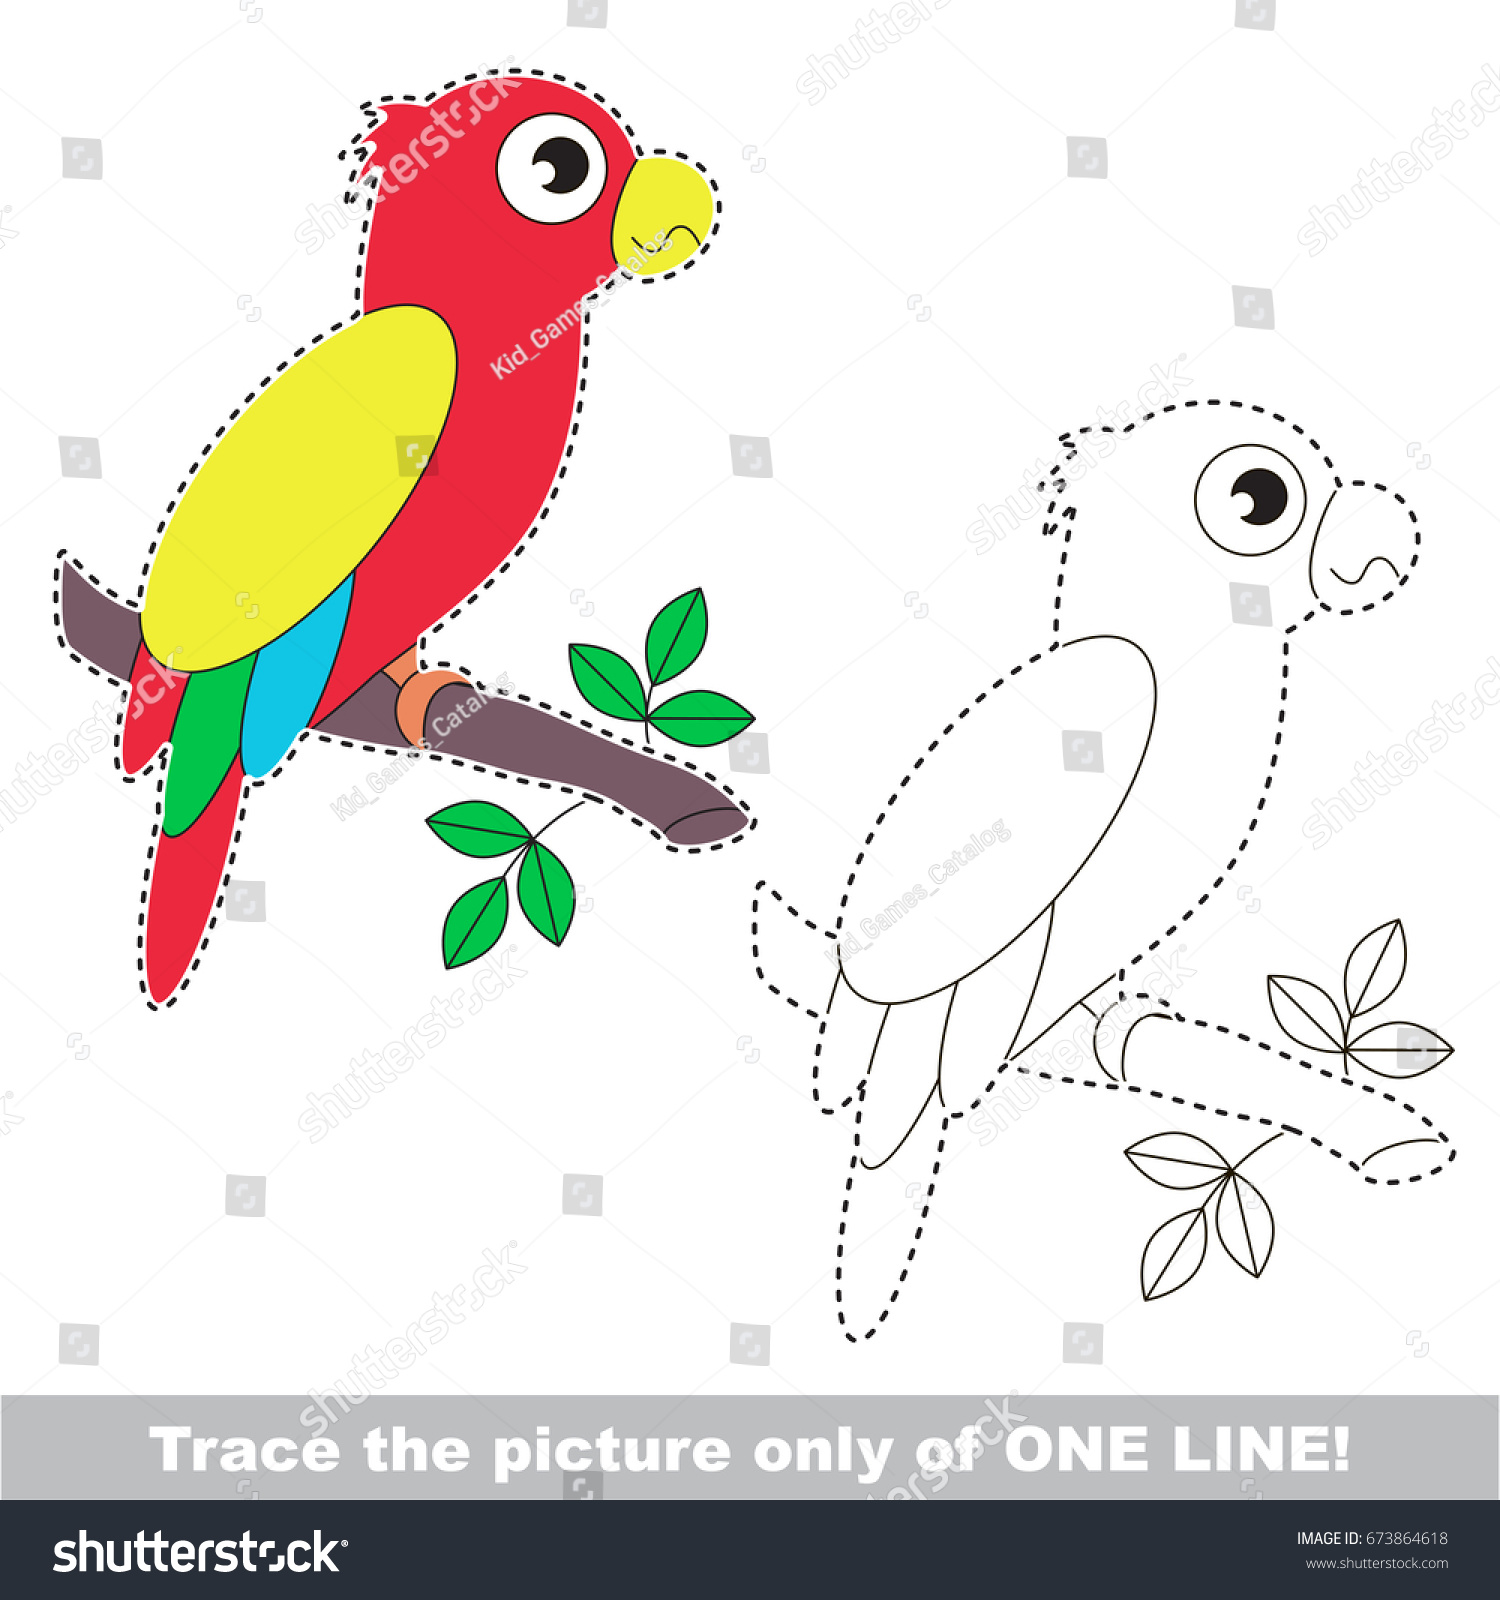 Funny Parrot Be Traced Only One Stock Vector